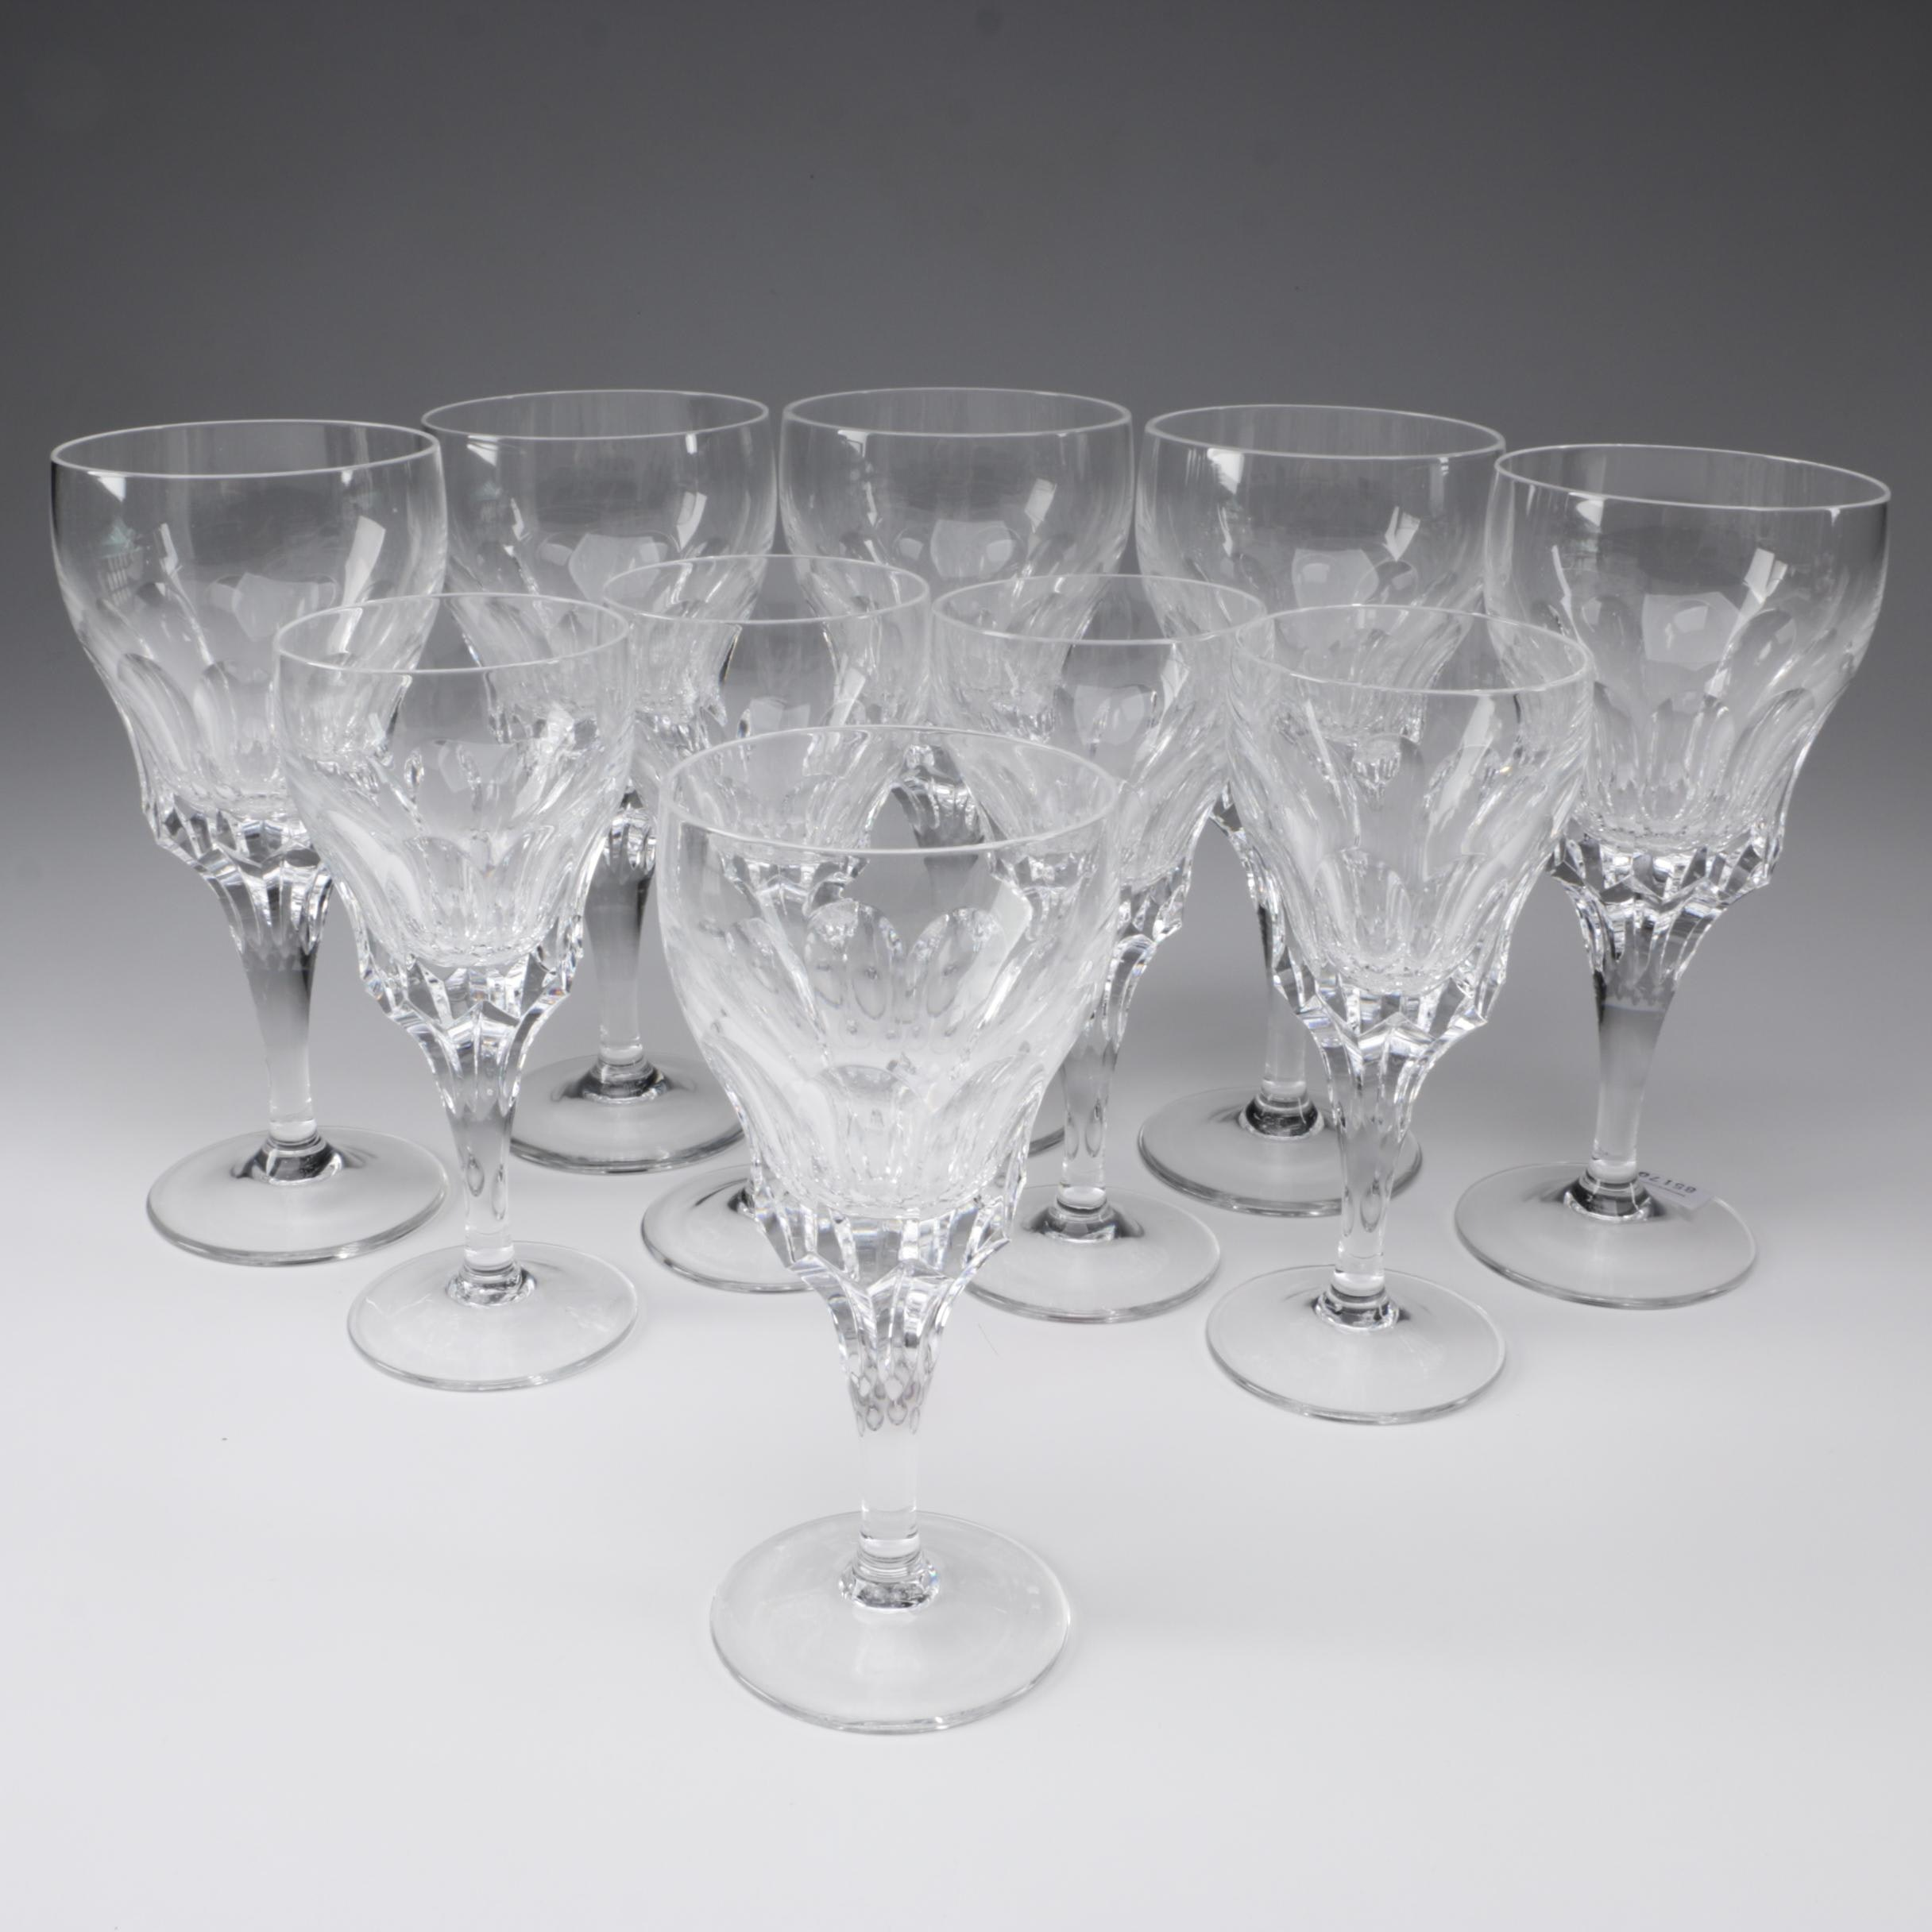 Crystal Wine and Claret Glasses